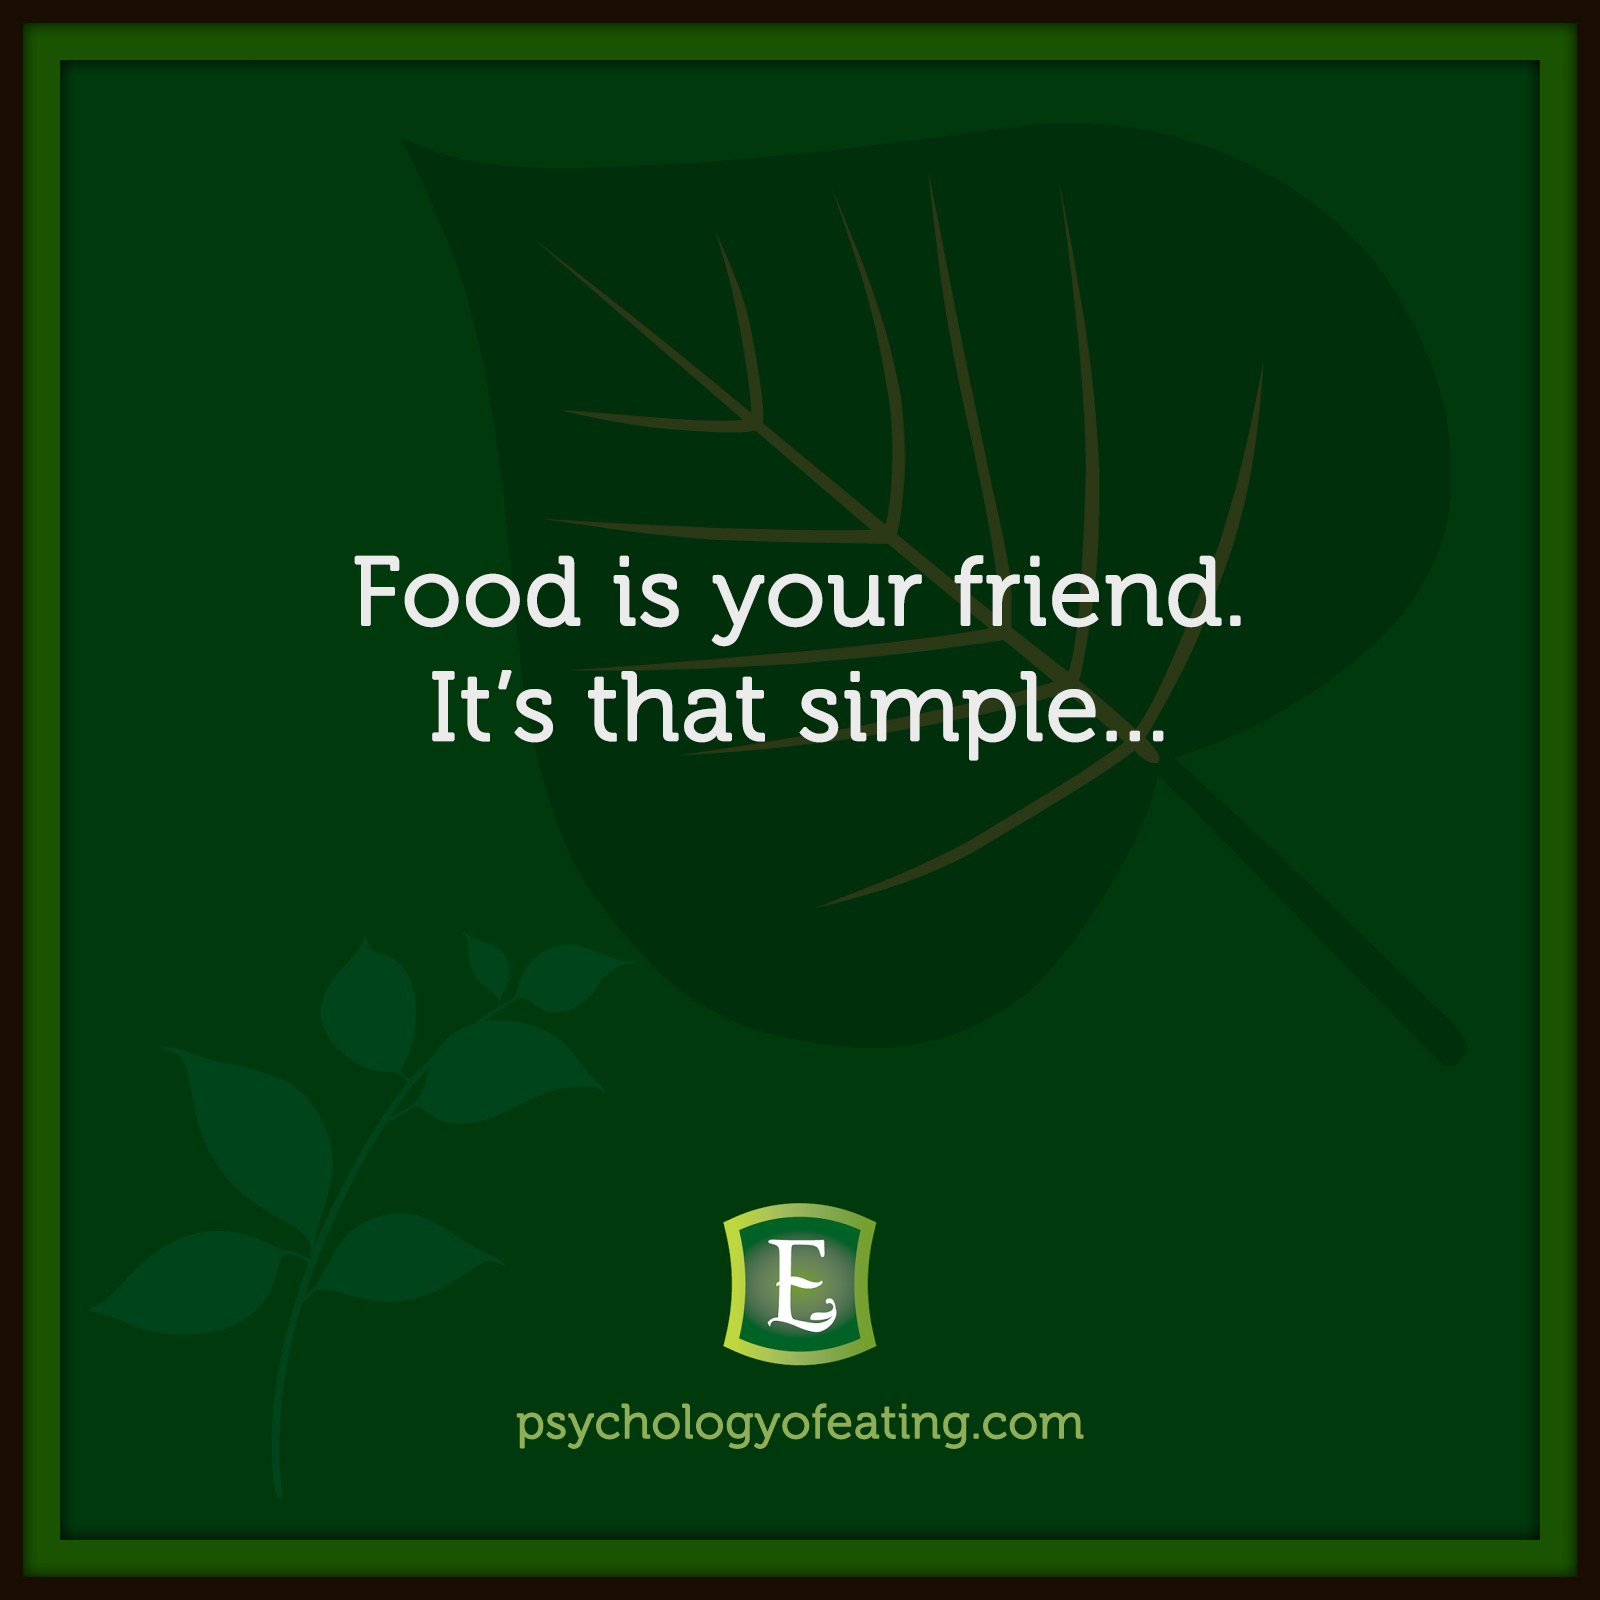 Food is your friend. It's that simple… #health #nutrition #eatingpsychology #IPE